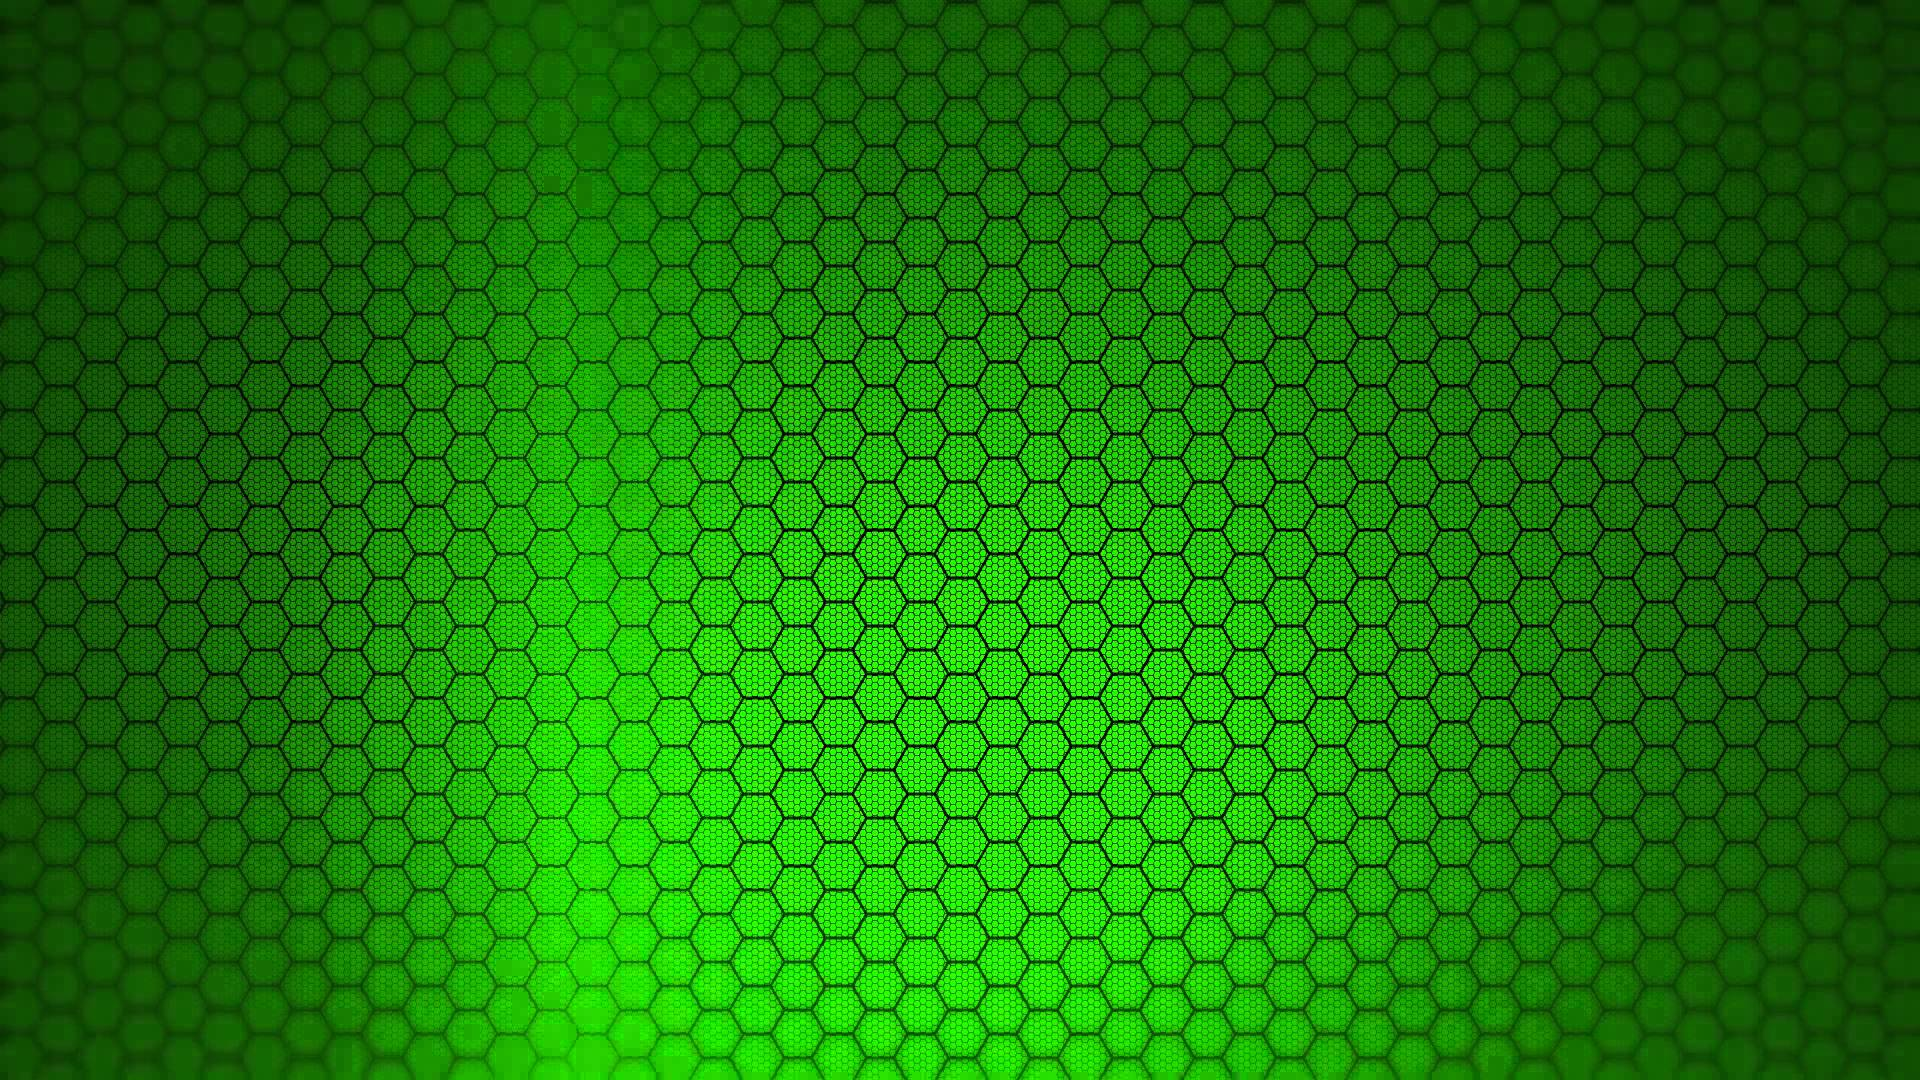 Neon Green Backgrounds Wallpaper 1920x1080